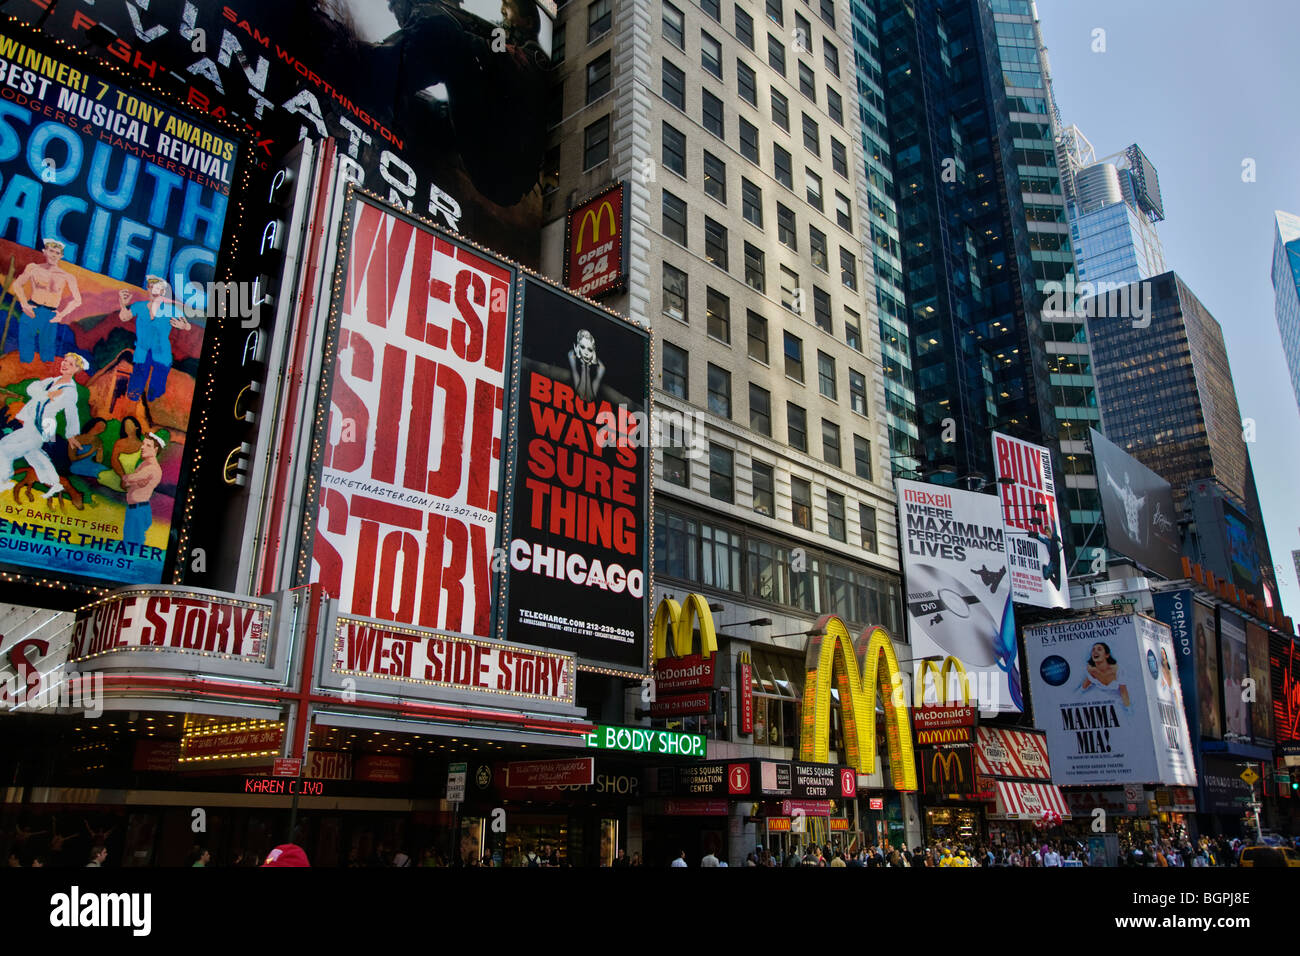 BROADWAY ADS for West Side Story, South Pacific, and Chicago - NEW YORK, NEW YORK - Stock Image